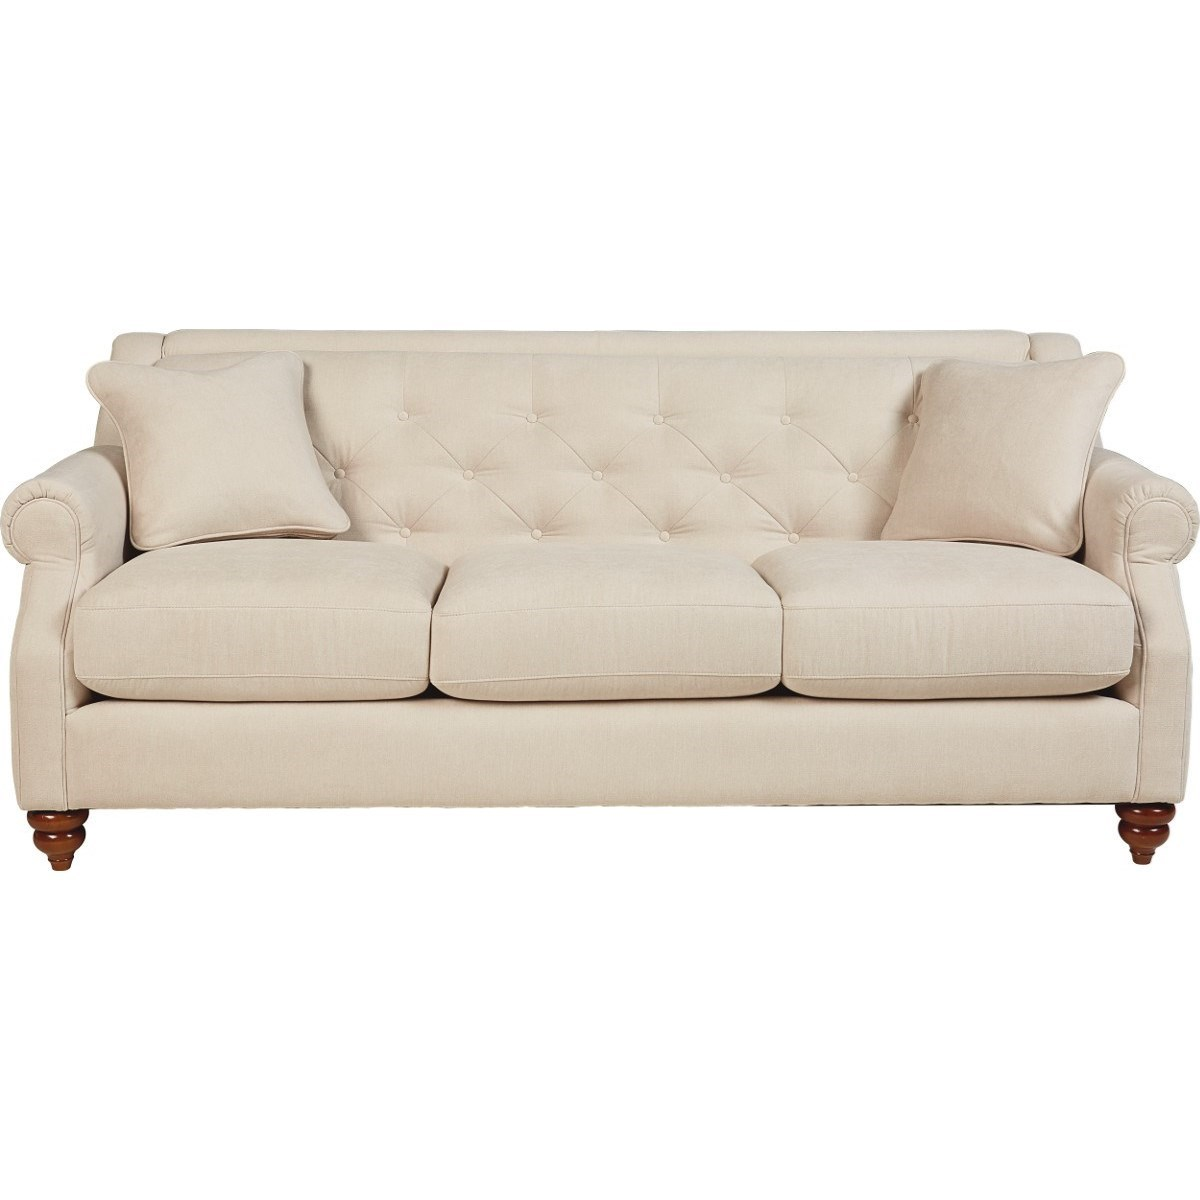 La z boy aberdeen traditional sofa with tufted seatback for Traditional sofas